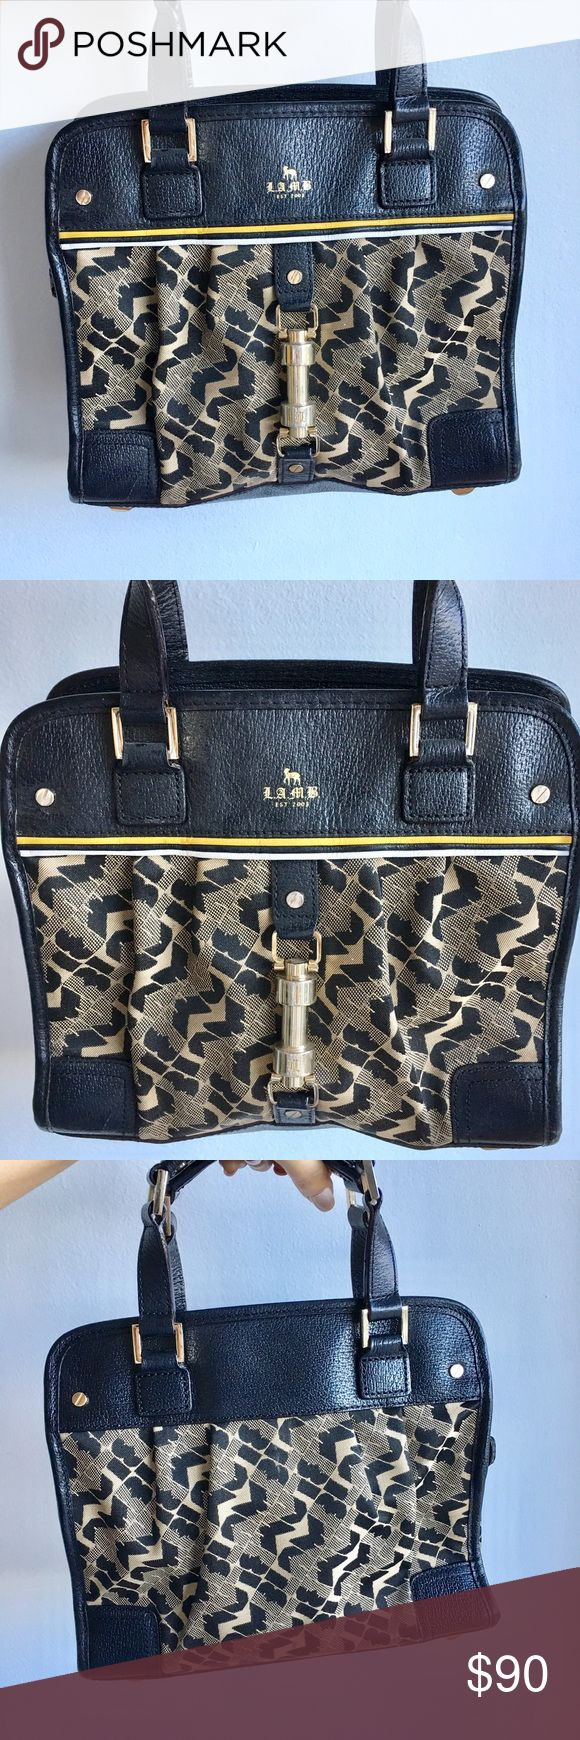 LAMB handbag This LAMB handbag has been one of my all time favs. It's gently used and in great condition. Trimmed with genuine black leather with gold hardware and one of the LAMB signature patterns on the body. The interior has a ton of pockets as well. This bag is much more spacious than it looks FYI. 😊💫💼 LAMB Bags